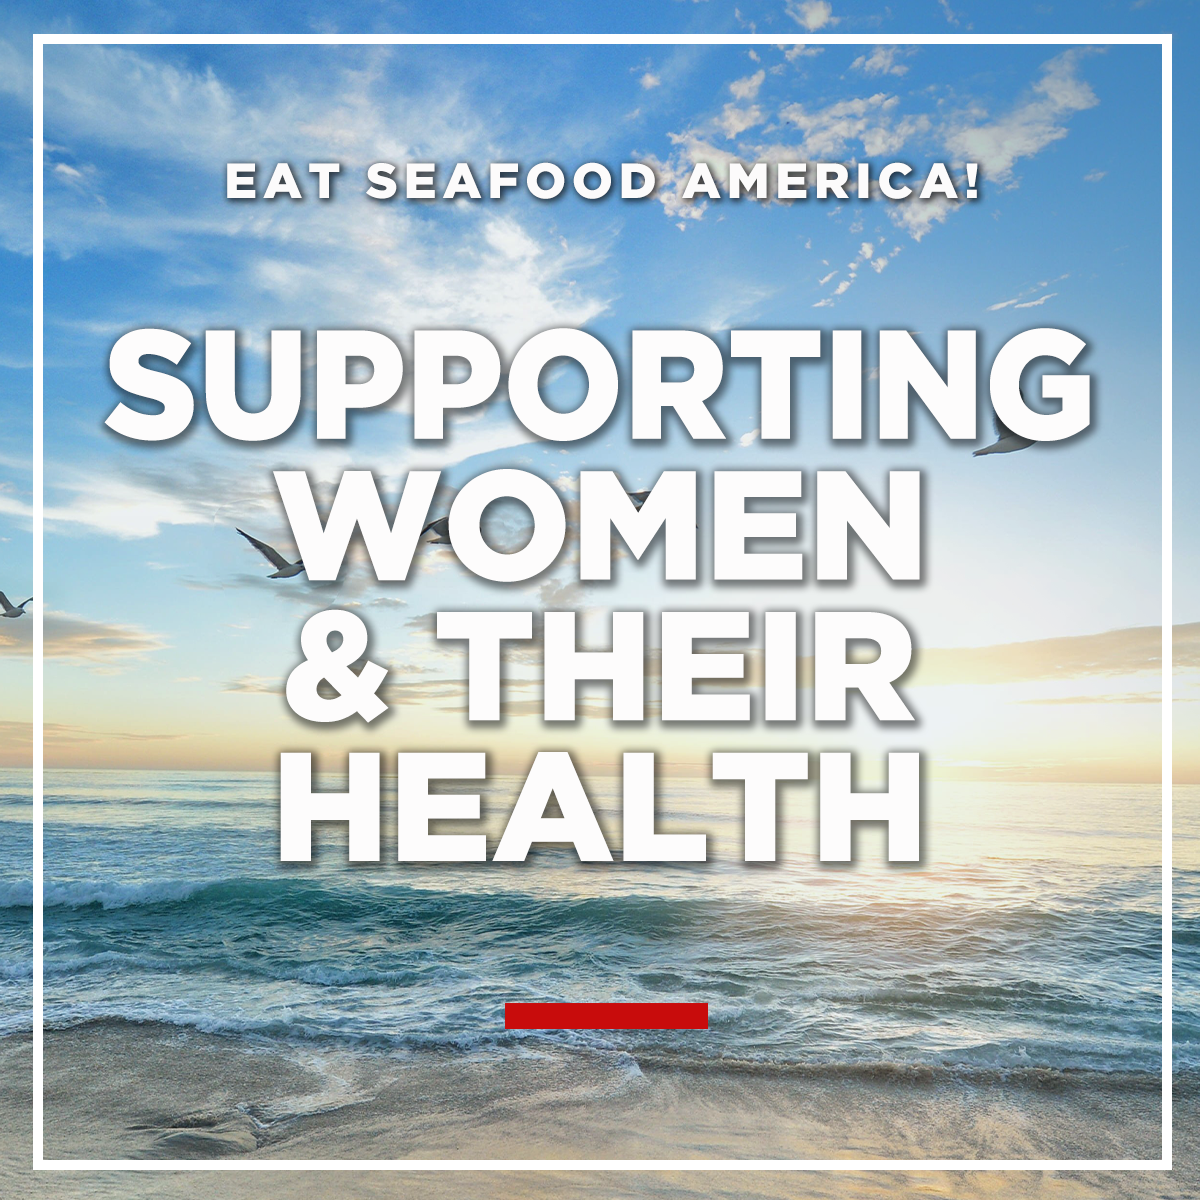 Supporting Women & their Health graphic